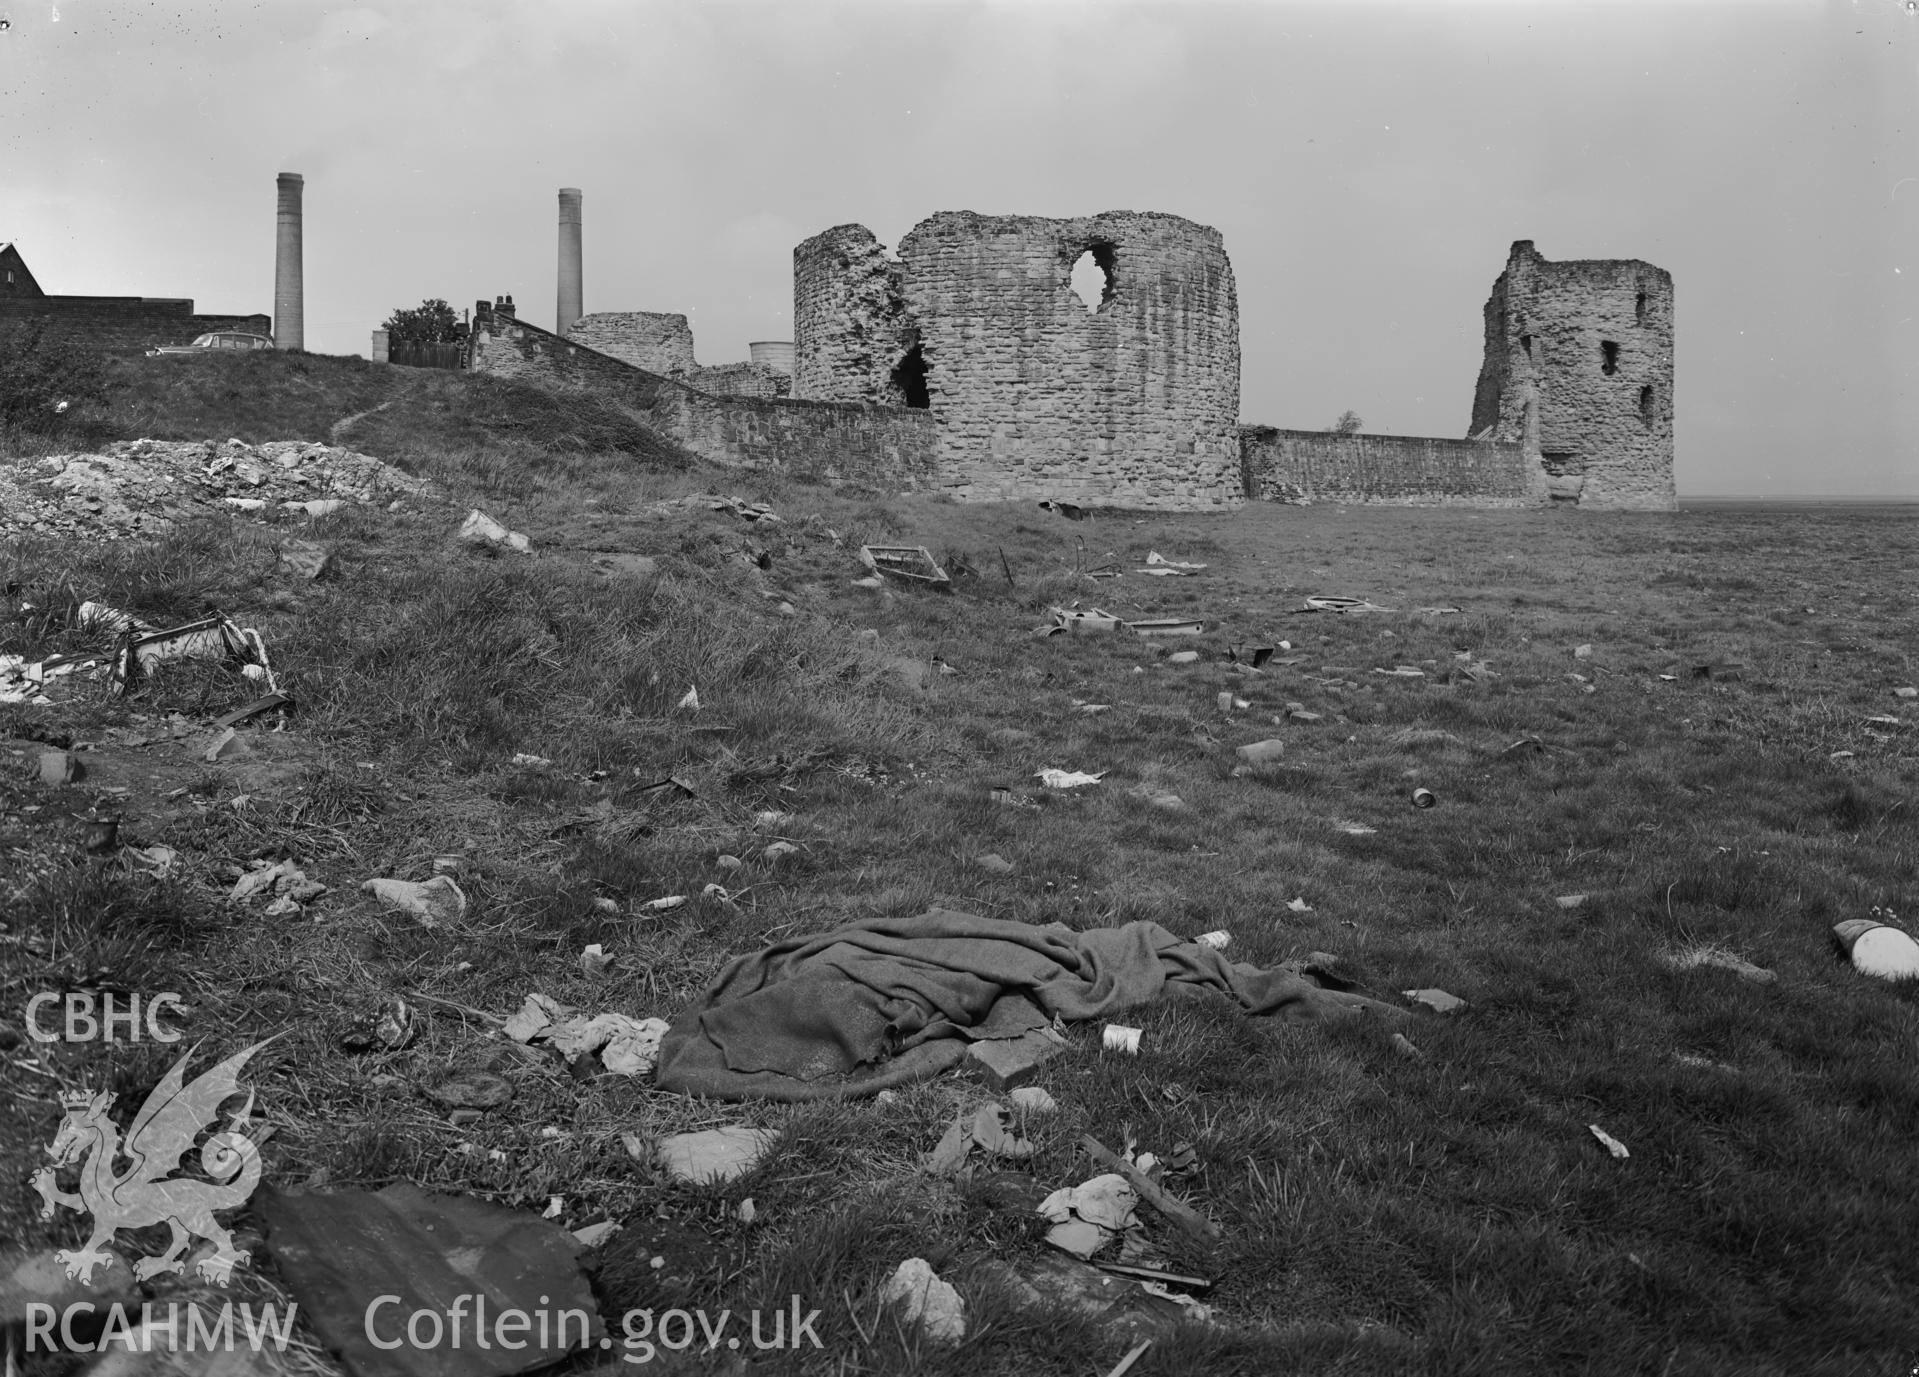 D.O.E photograph of Flint Gaol - view of castle from south east showing rubbish on bank and saltings. In castle outer ward (since removed).